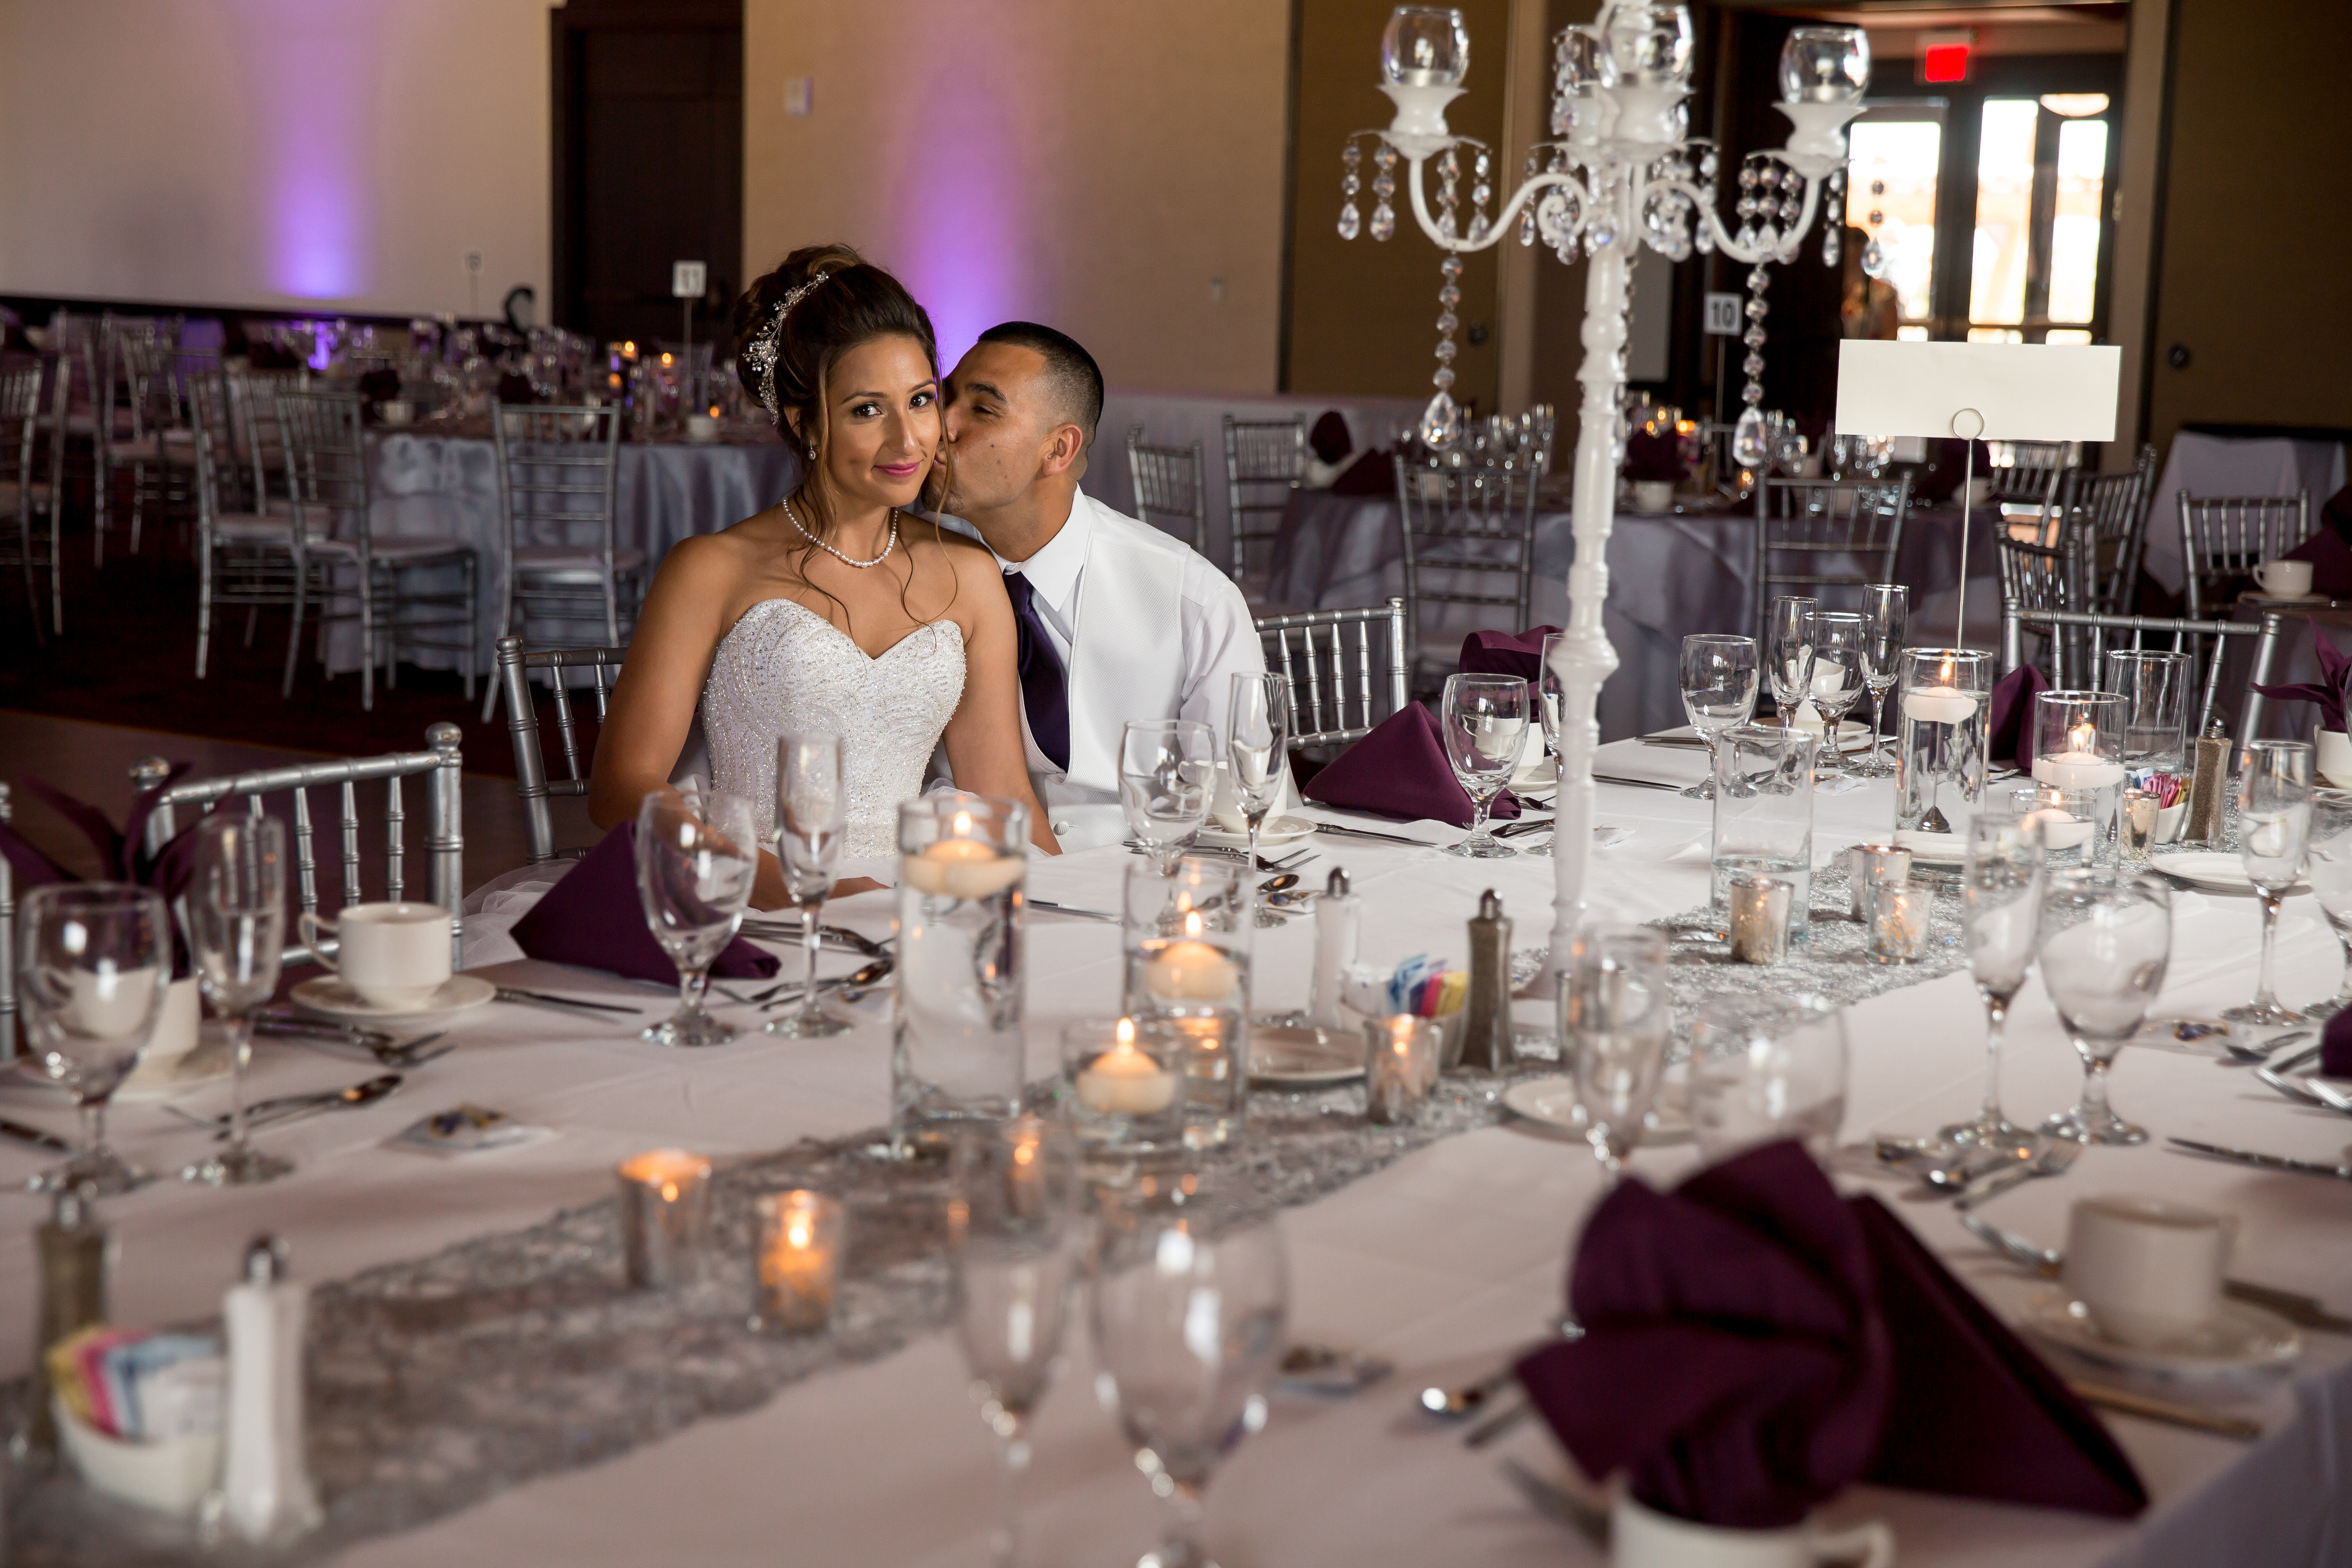 Perfect Wedding Guide planning design inspo ceremony inspiration marriage wedding vows celebration engaged planner tips tricks decor event New Mexico Albuquerque Santa Fe true love reception happily ever after white wedding silver details tablescape reception decor candles crystals